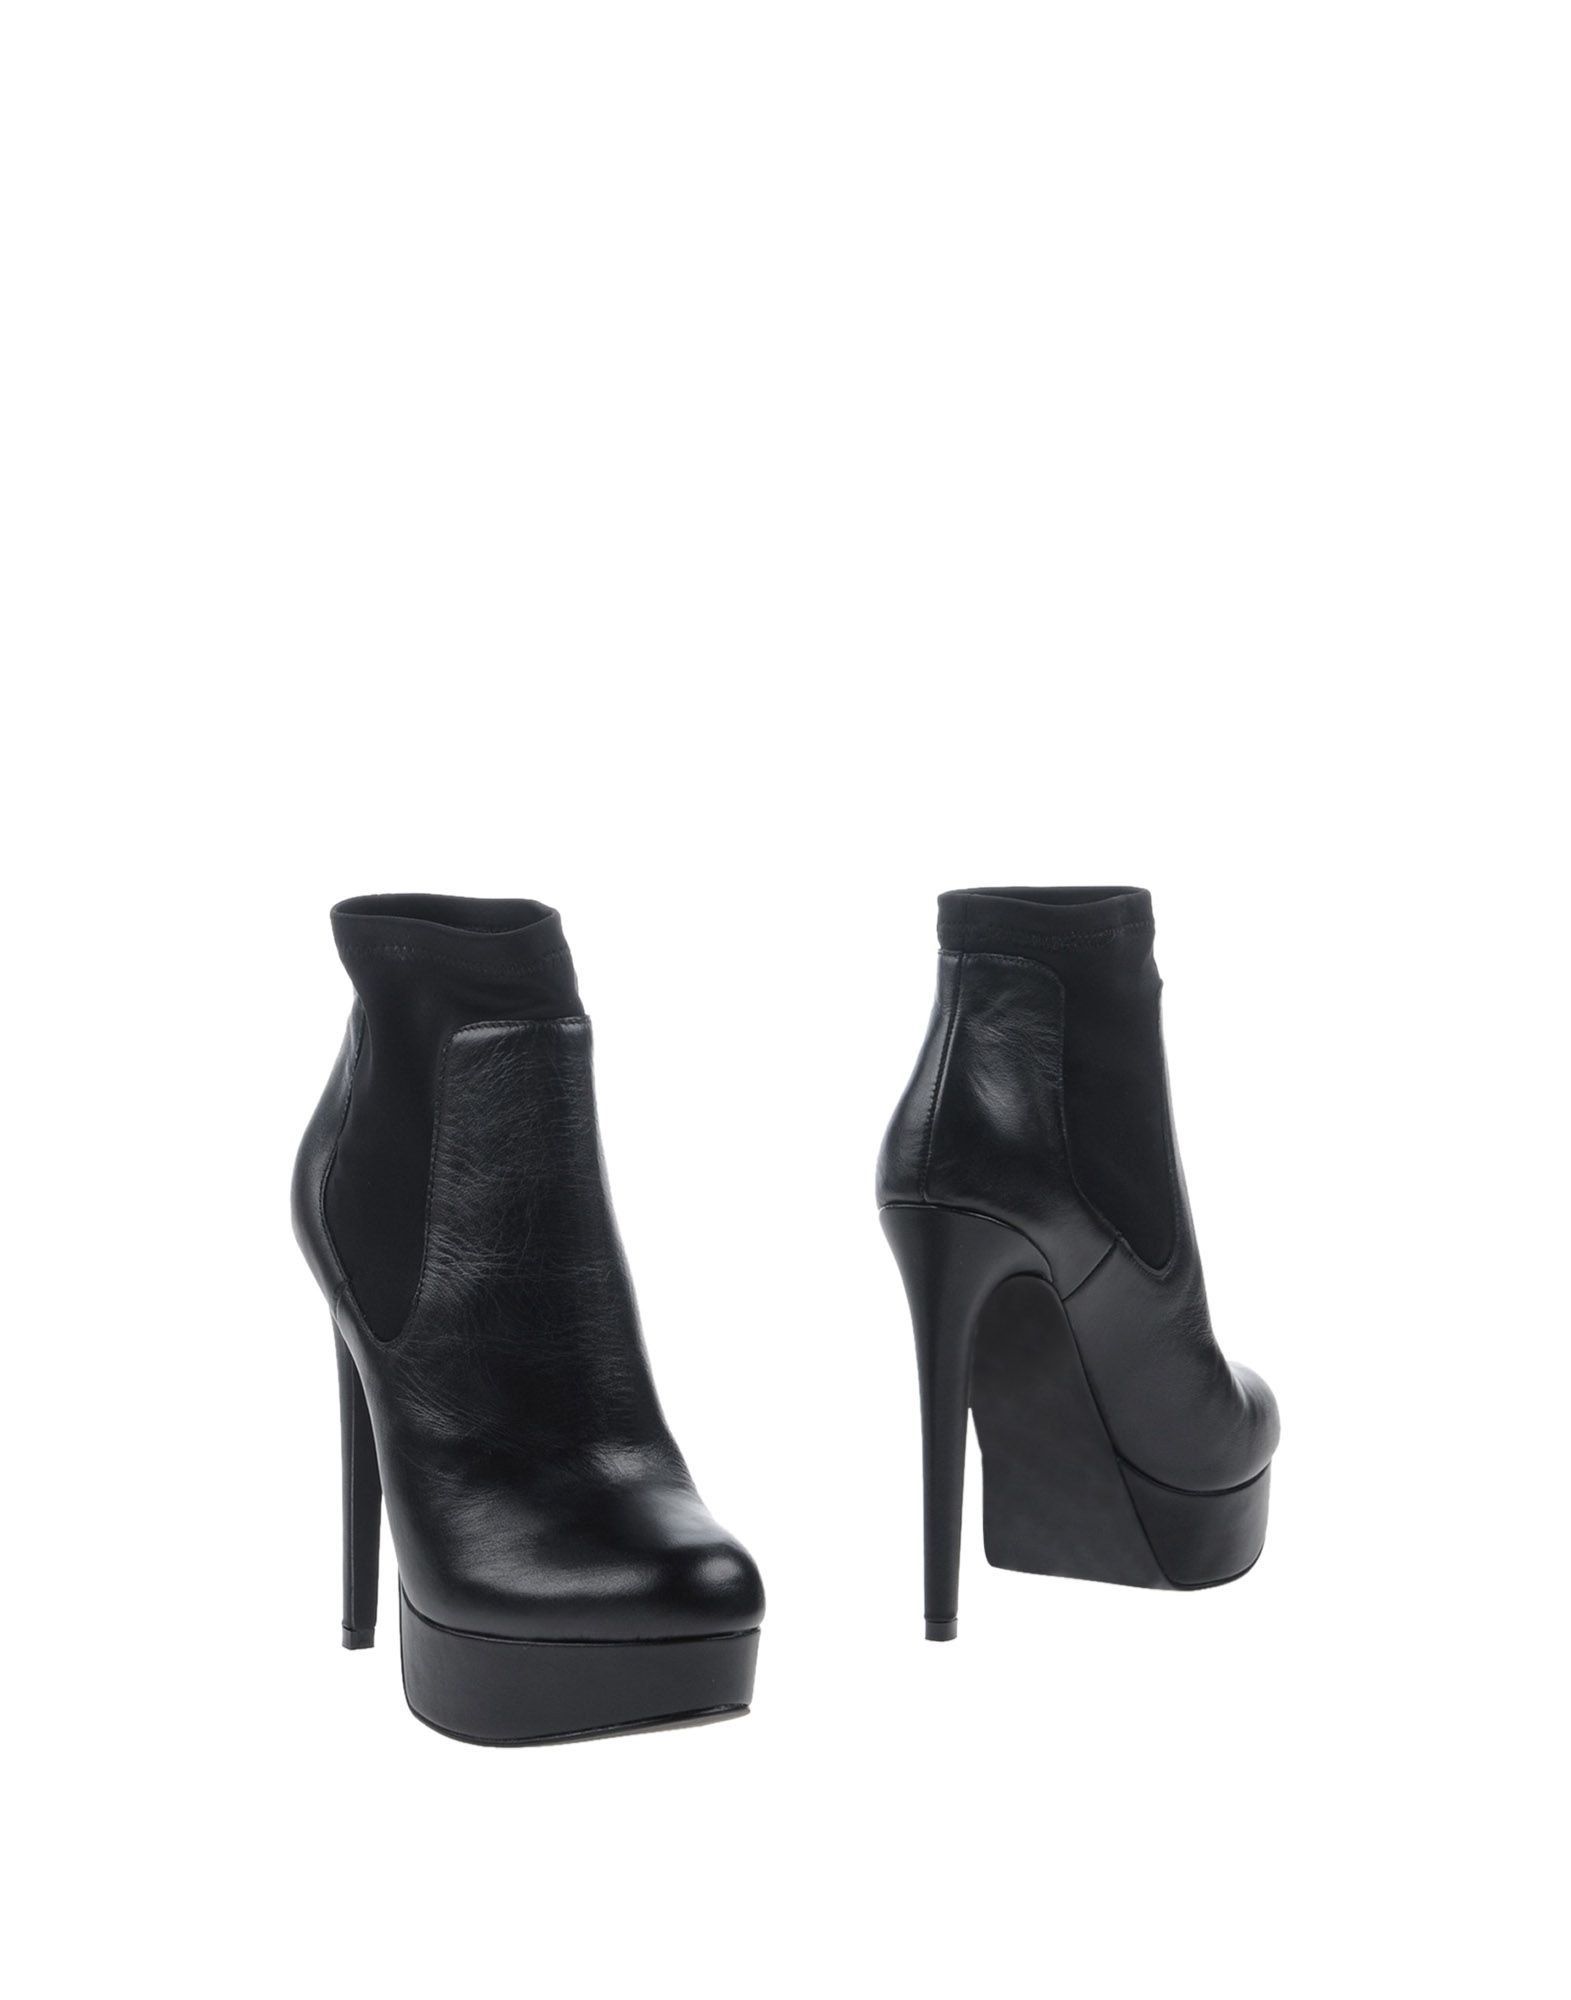 Bottine Steve Madden Femme - Bottines Steve Madden sur